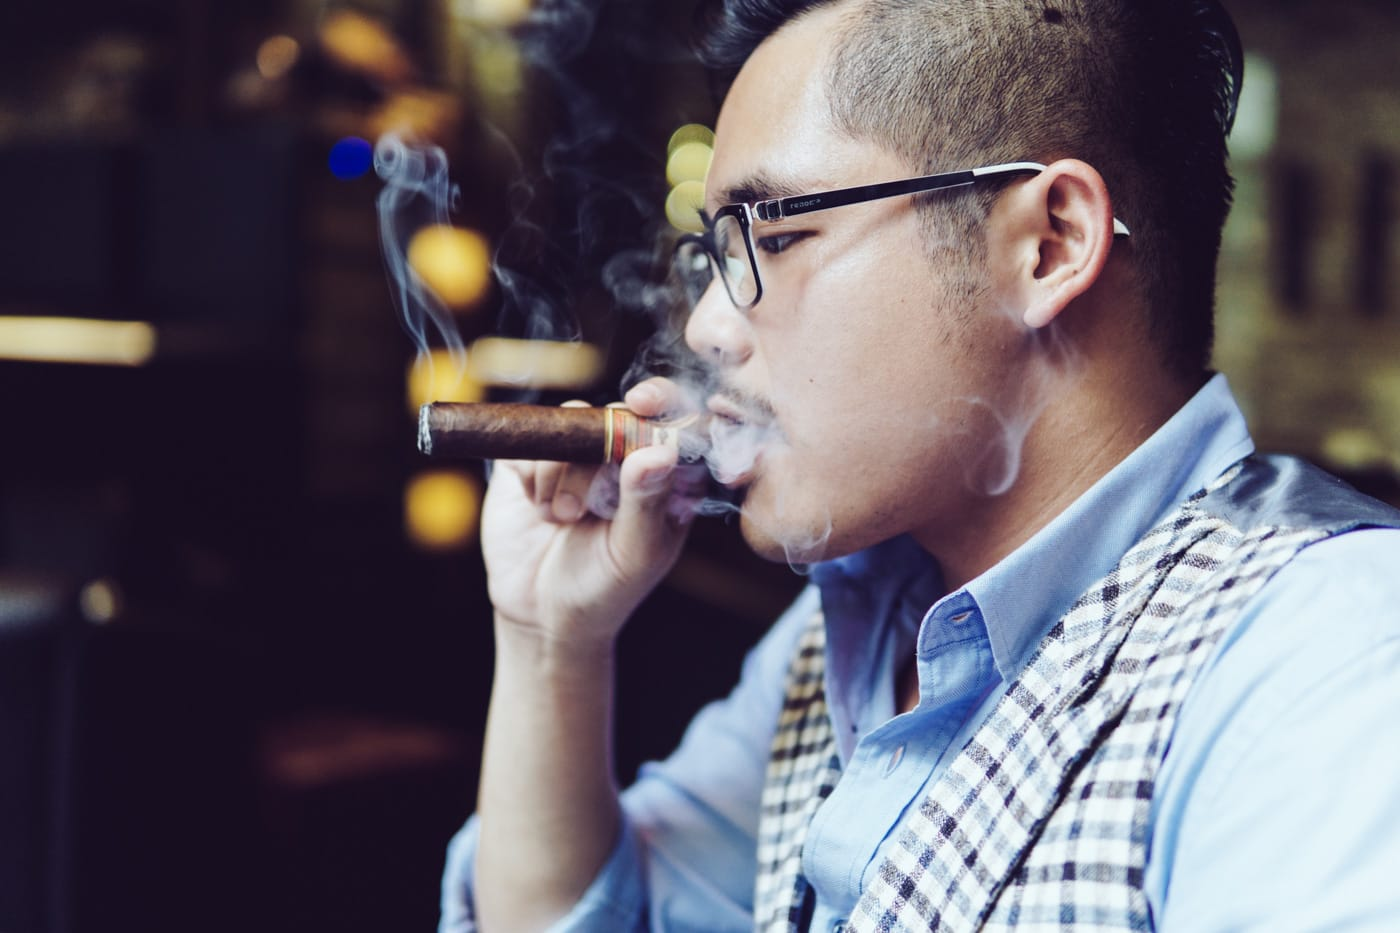 Dennis Tuan Phan - Cigar Club in Vietnam